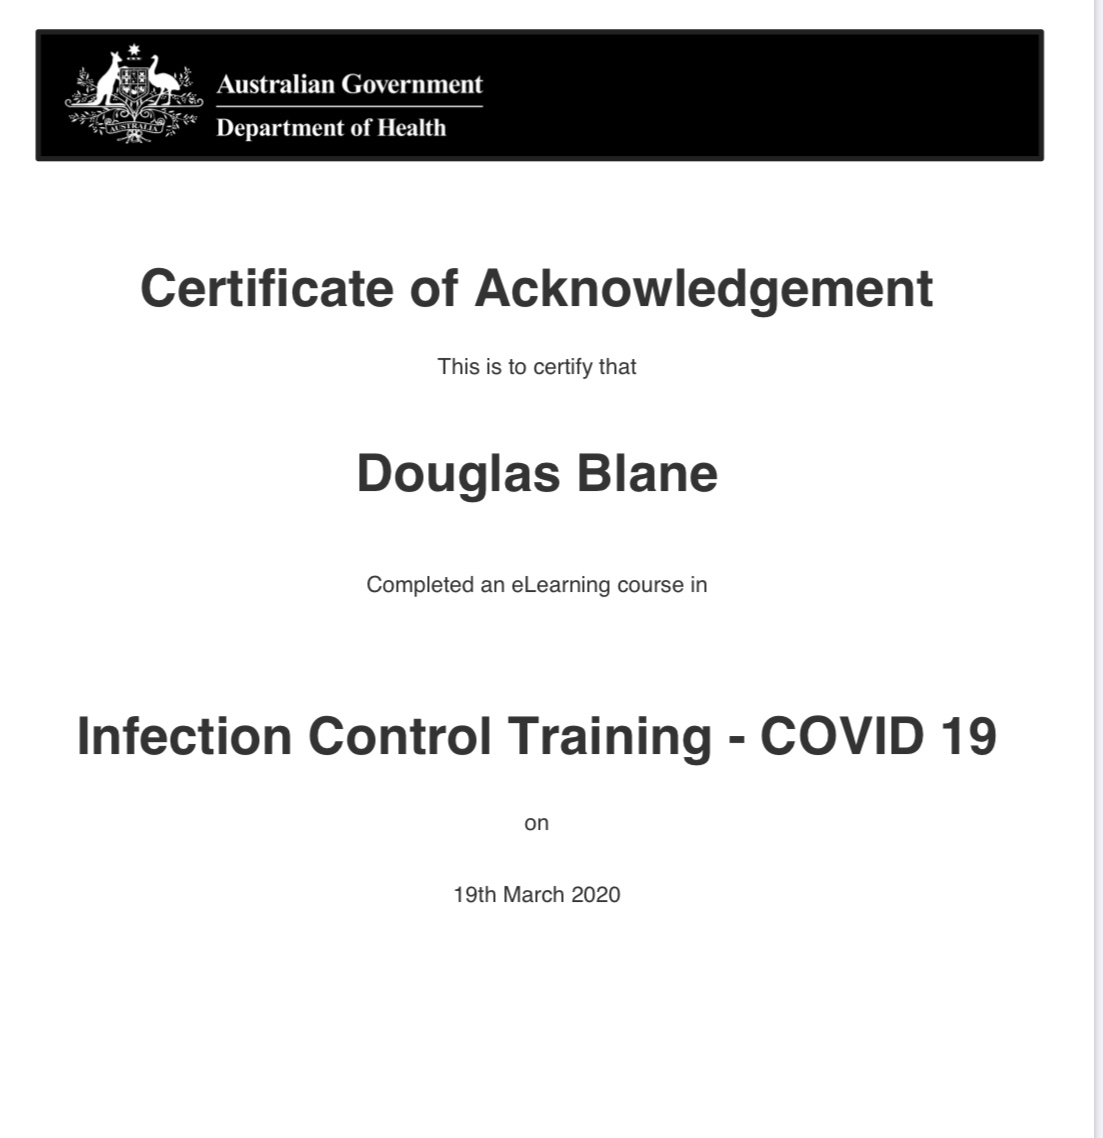 Infection Control Training Certificate - Douglas